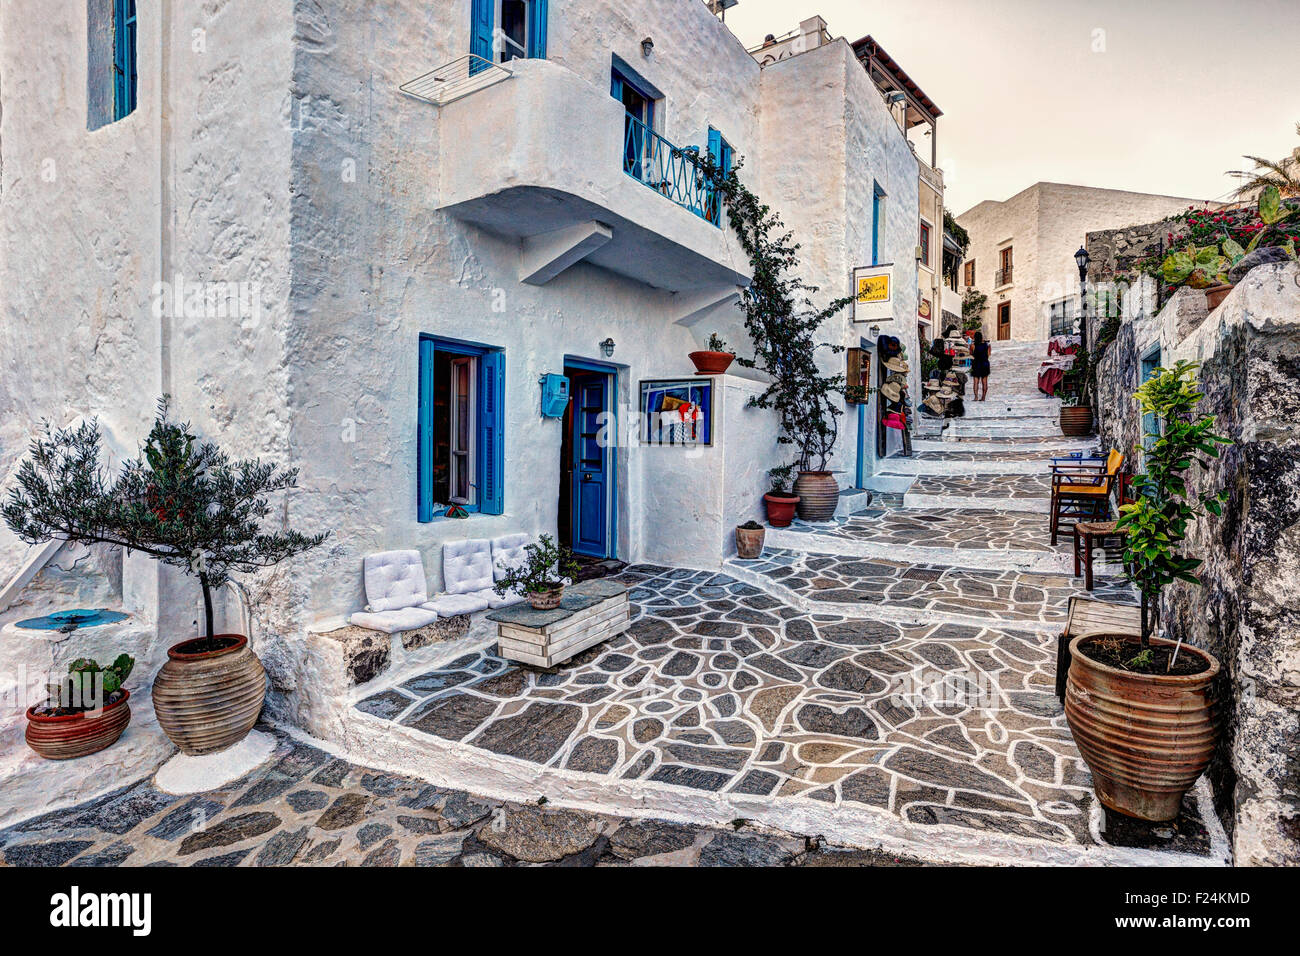 Le village traditionnel de Plaka à Milos, Grèce Photo Stock